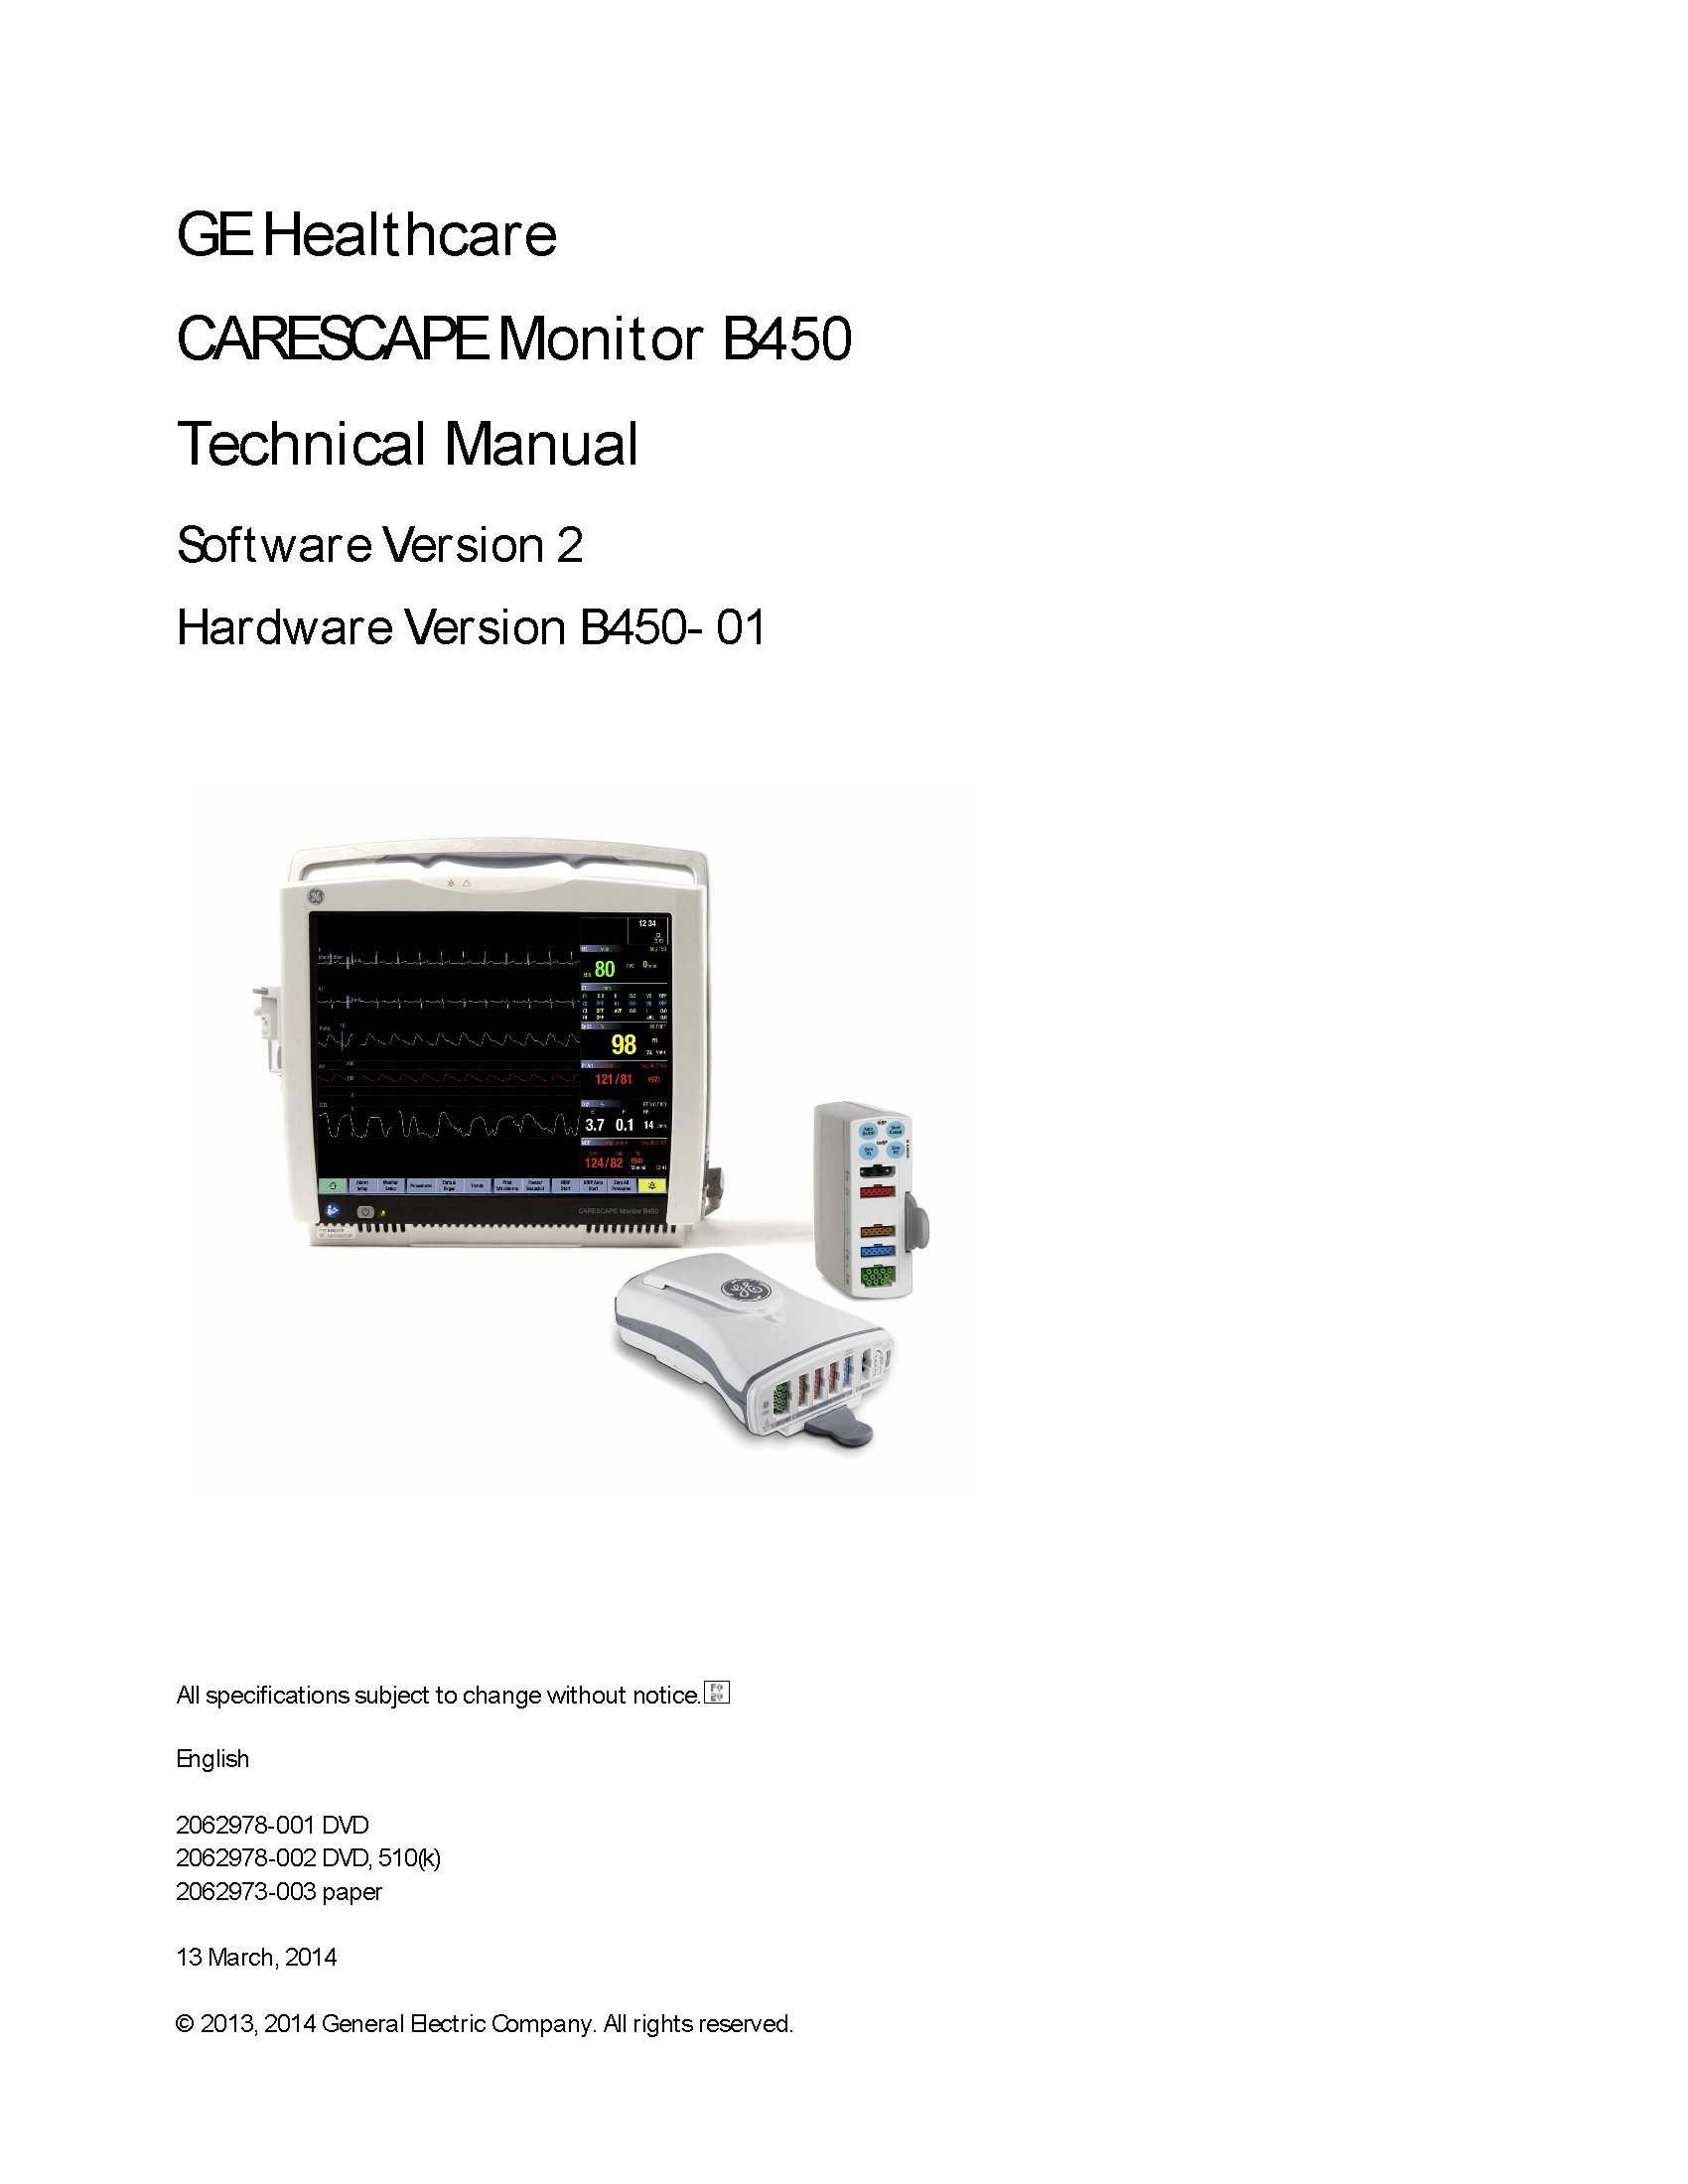 GE Carescape B450 Technical manual 2012